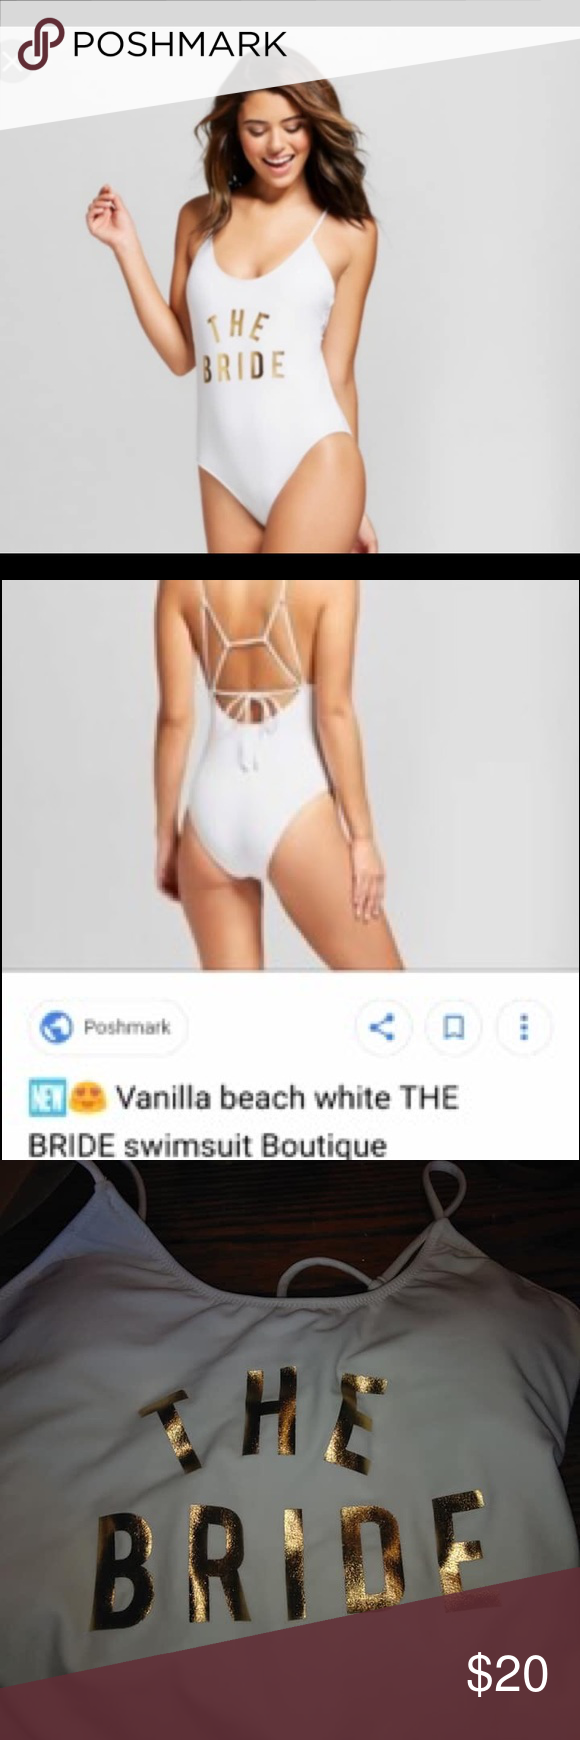 ed74a806346ea The bride swimsuit S or M honeymoon size NWT The bride swimsuit I have one  in